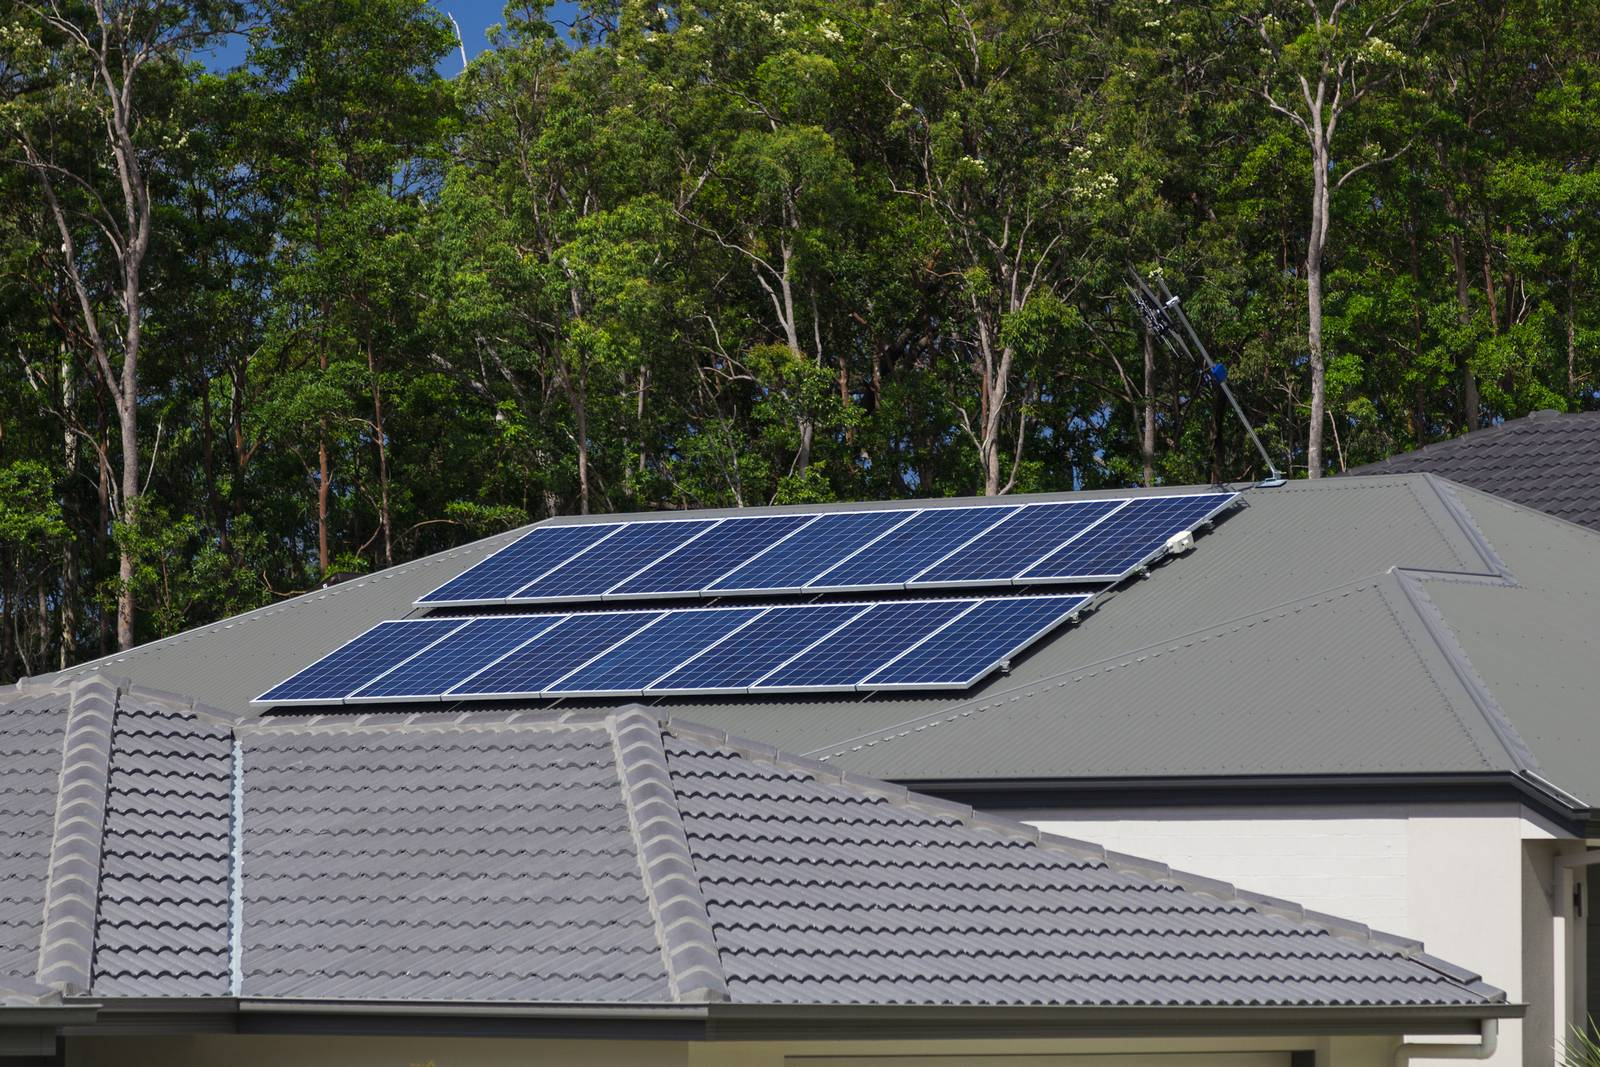 Roof top mounted solar panels